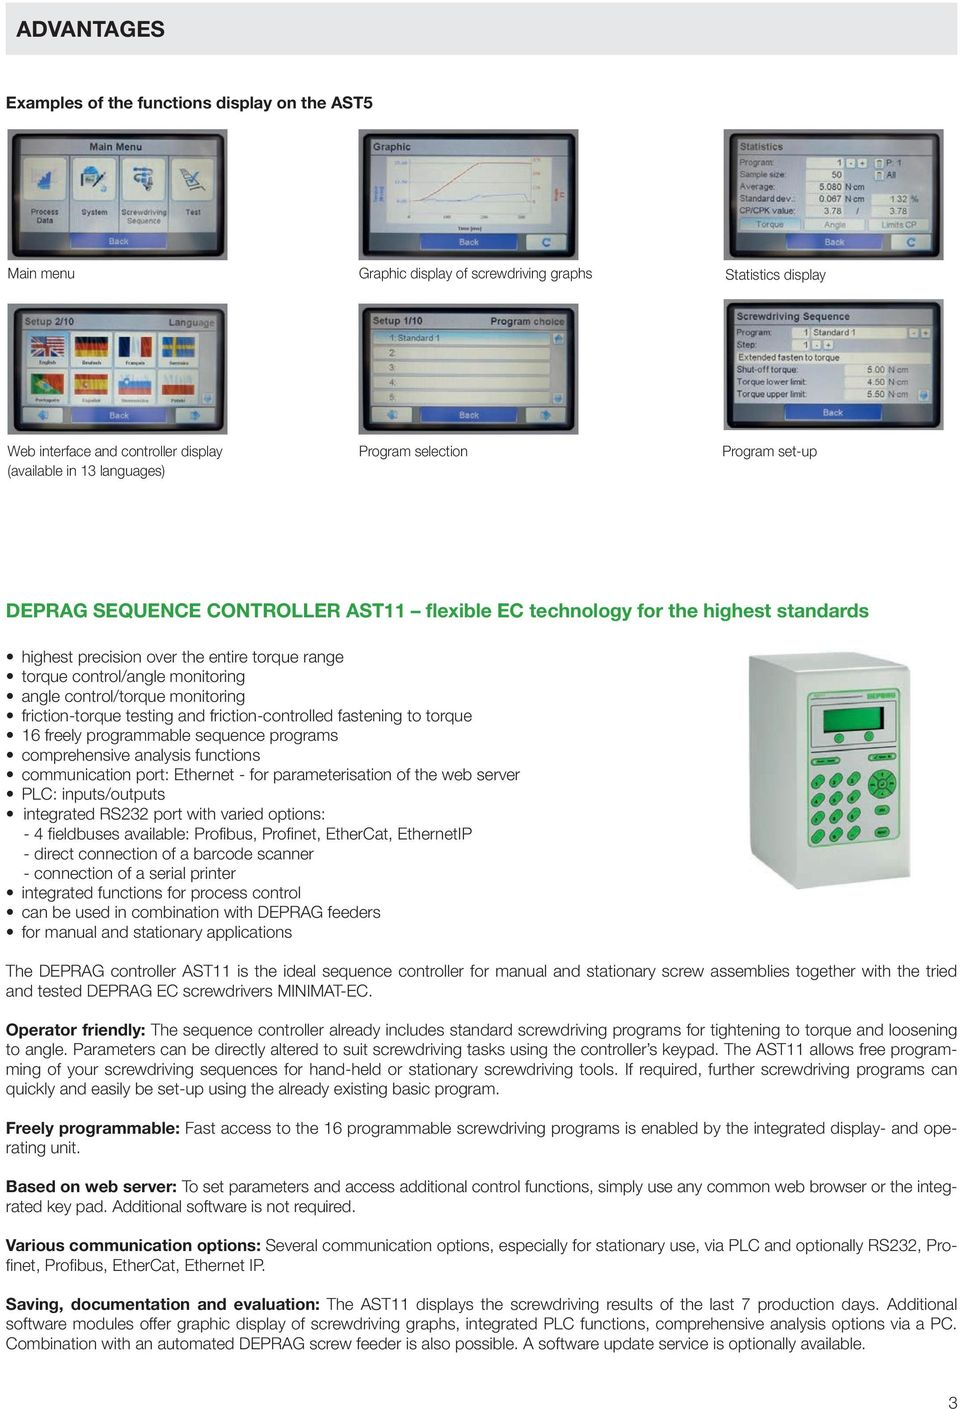 control/torque monitoring friction-torque testing and friction-controlled fastening to torque 16 freely programmable sequence programs comprehensive analysis functions communication port: Ethernet -